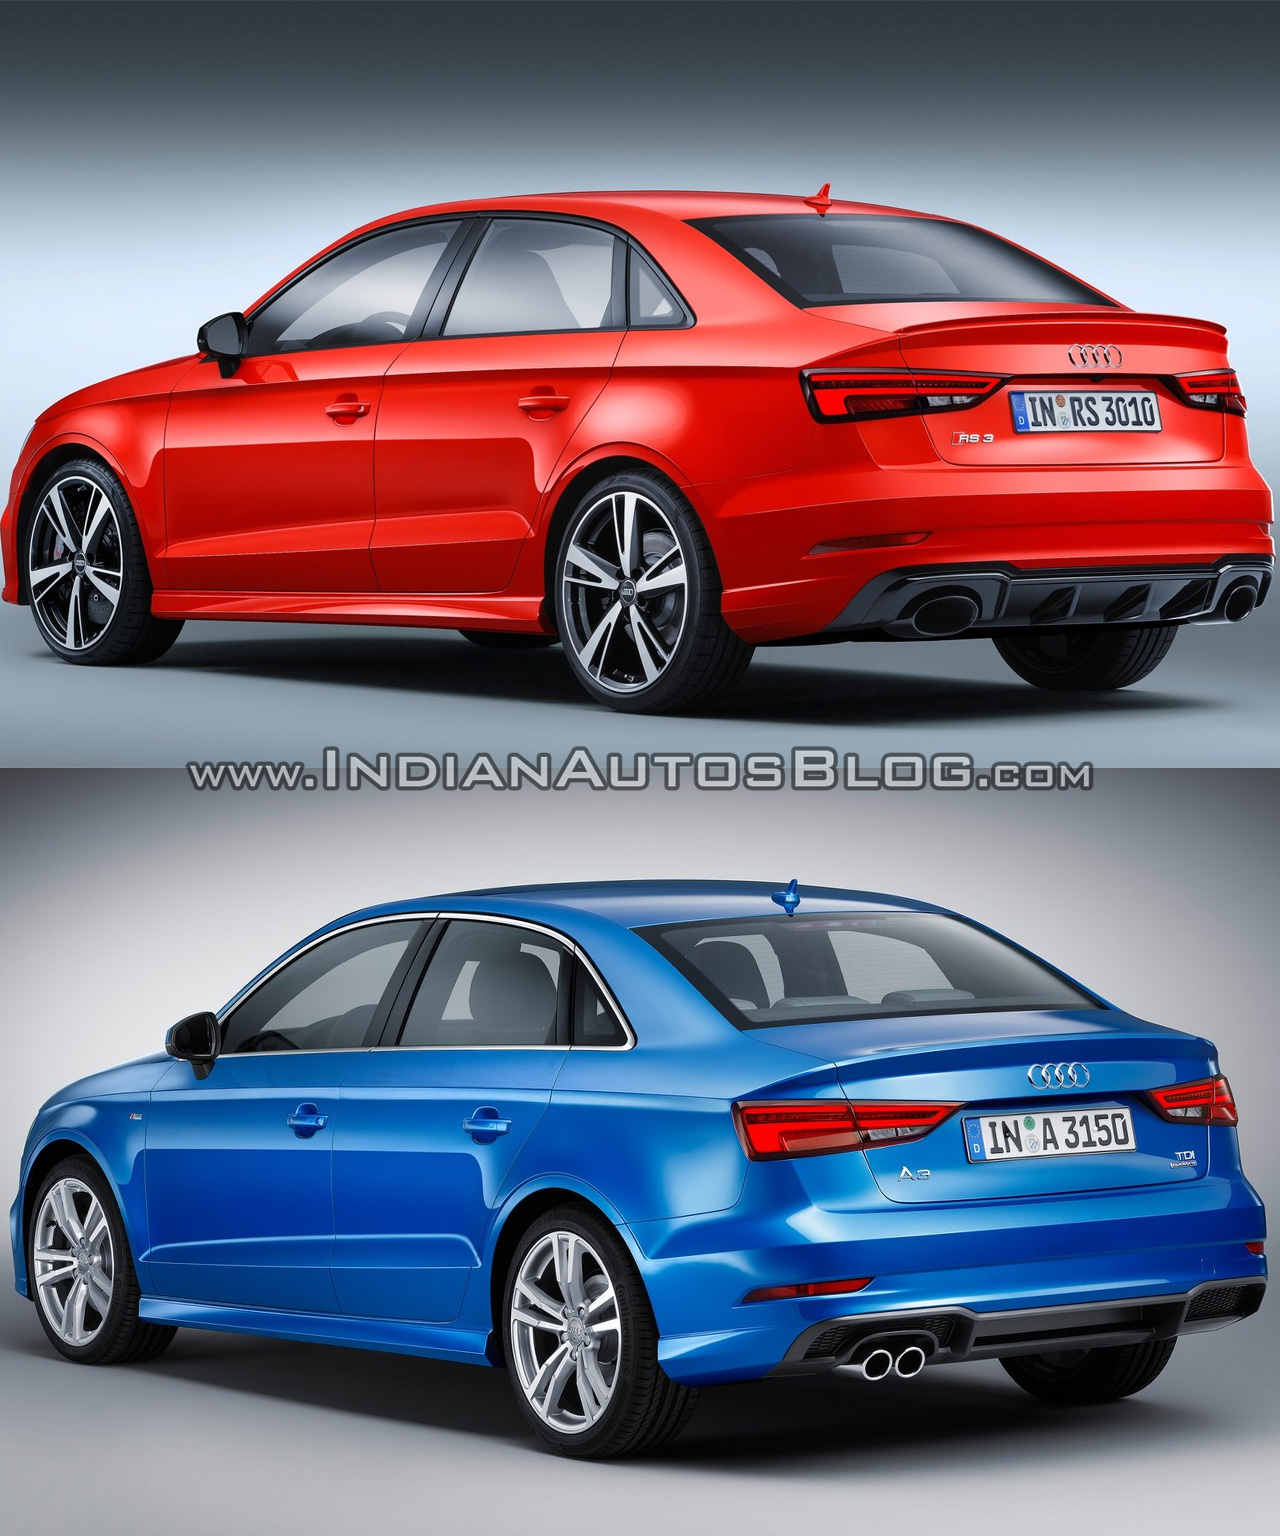 audi rs3 sedan vs audi a3 sedan in images. Black Bedroom Furniture Sets. Home Design Ideas